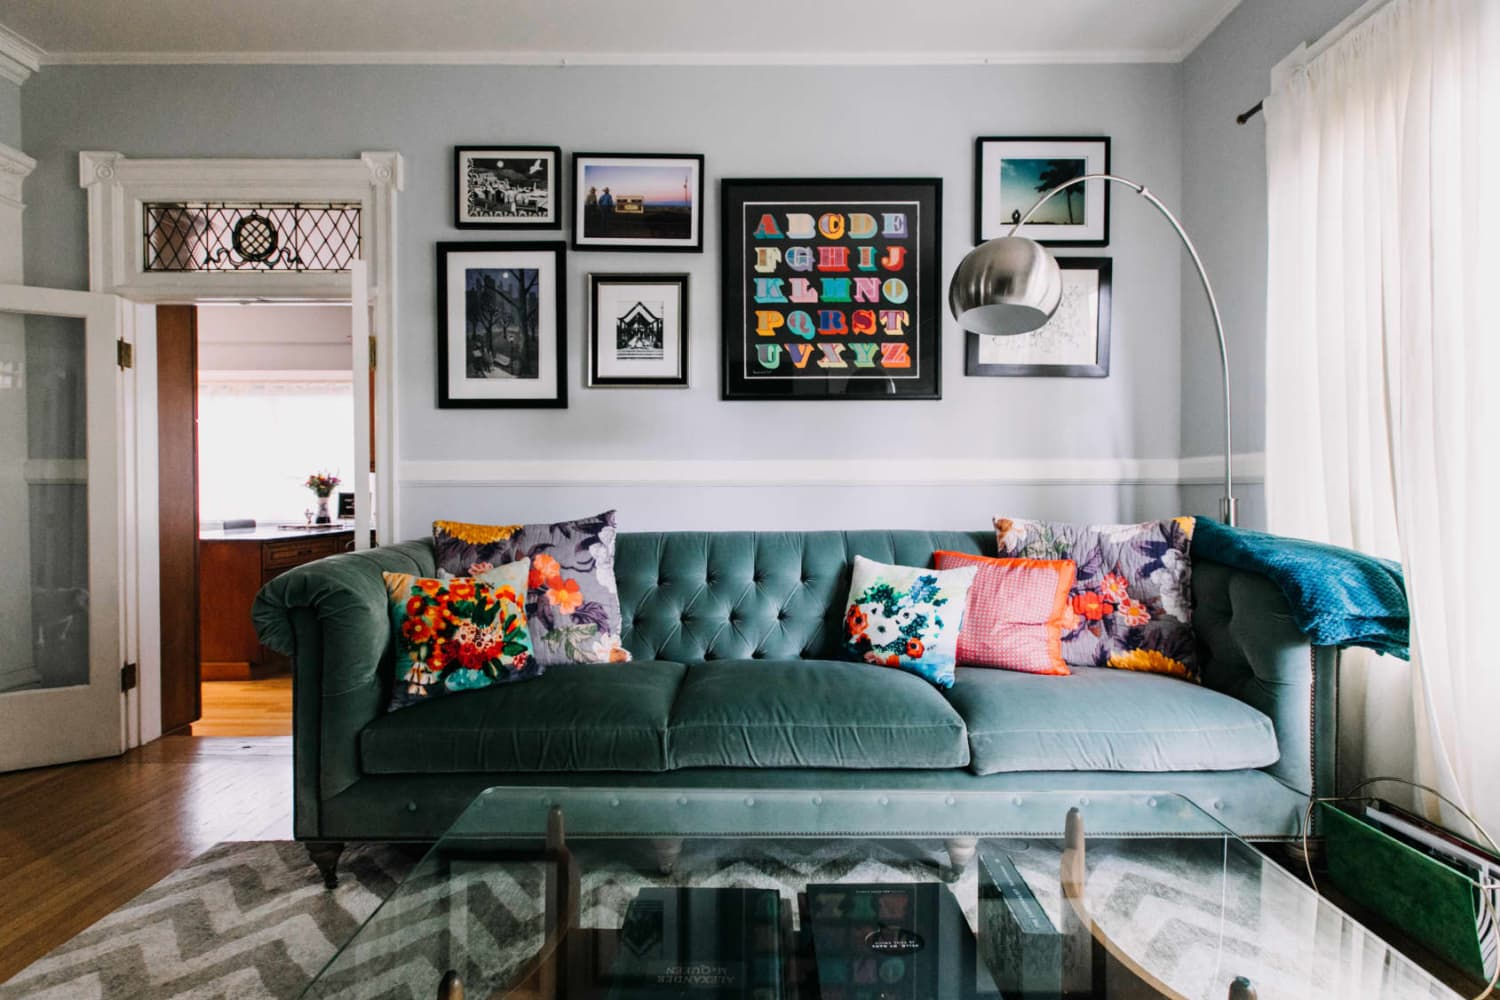 7 Ways to Judge the Quality of a Living Room Sofa Before You Buy It, According to Experts